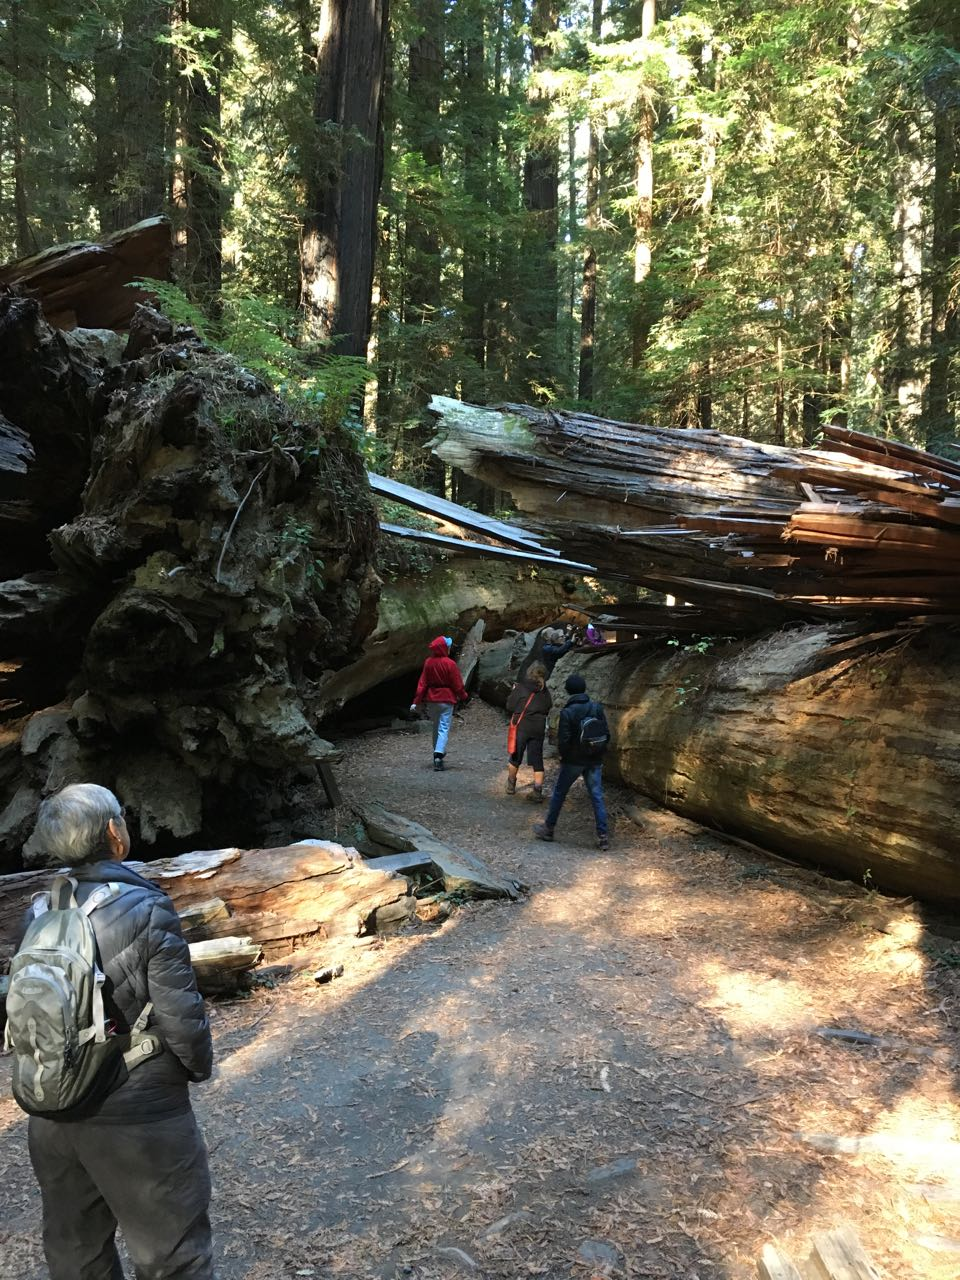 Redwoods 2017 10 08 22 Of 287